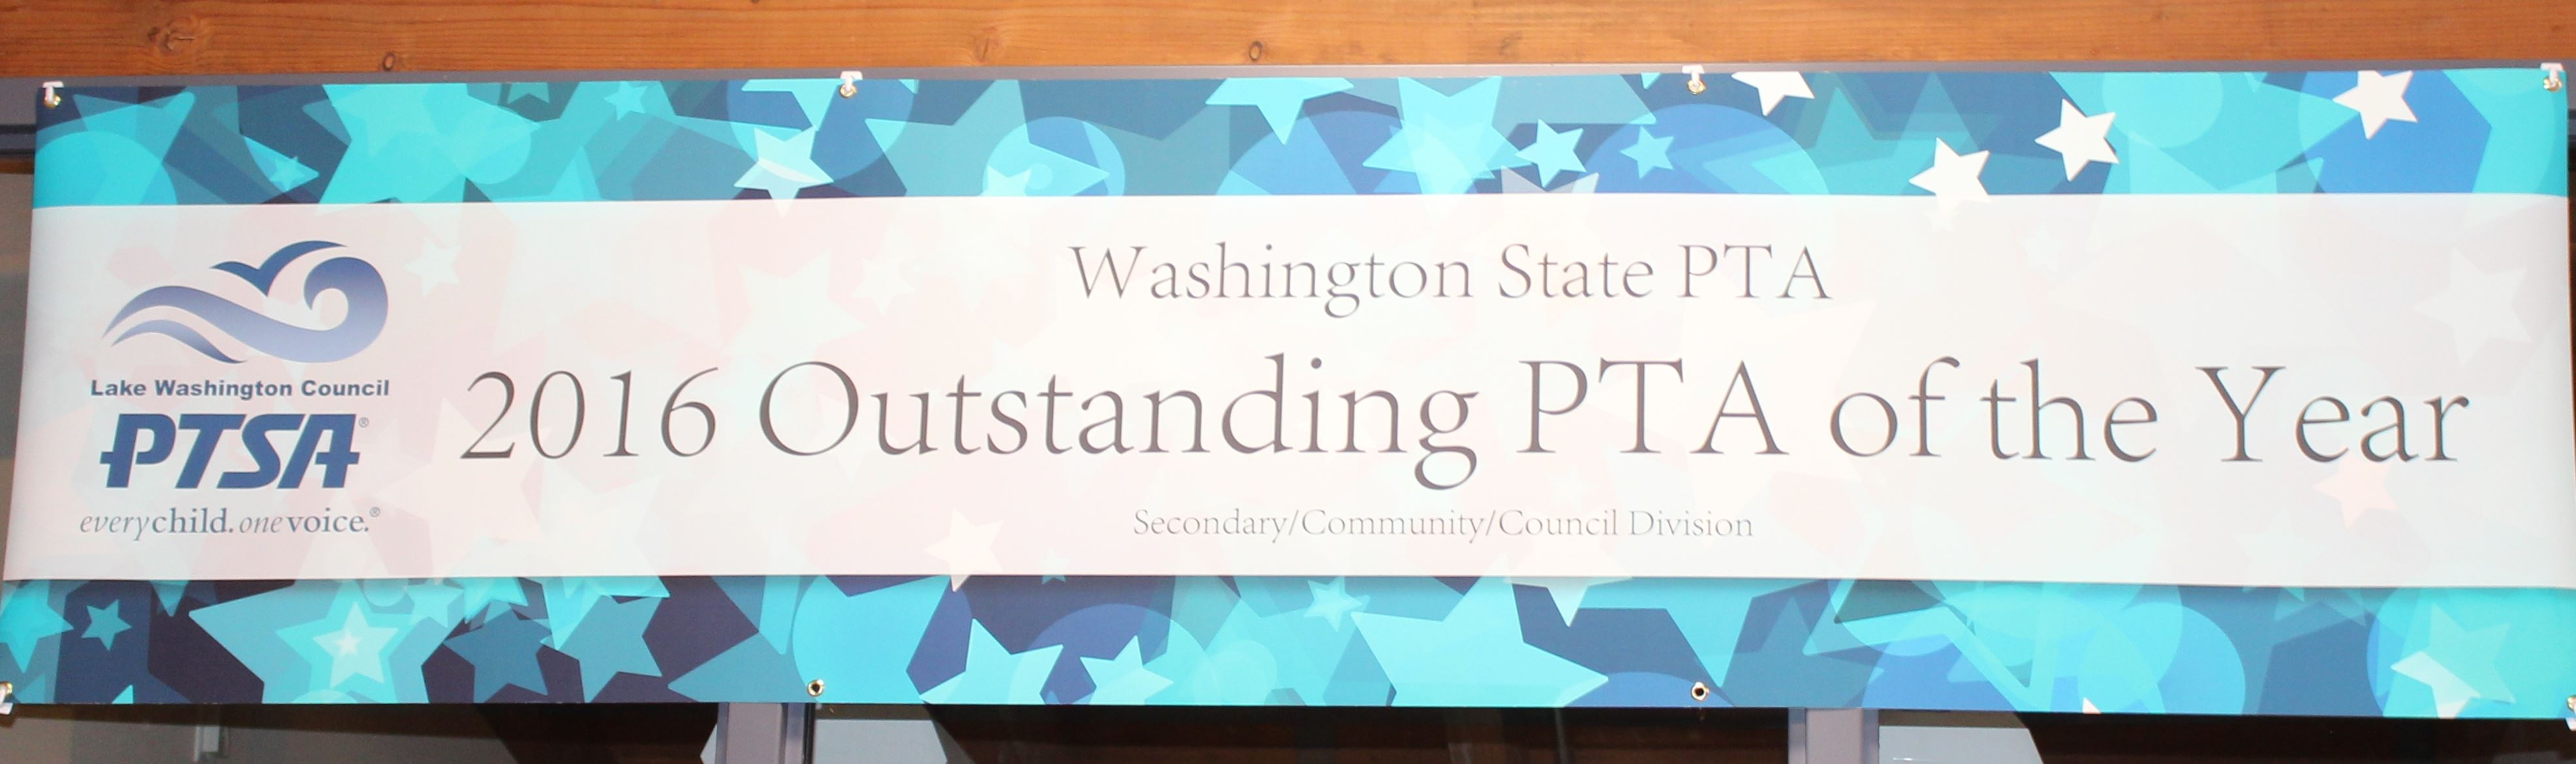 2016 Outstanding PTA of the Year banner